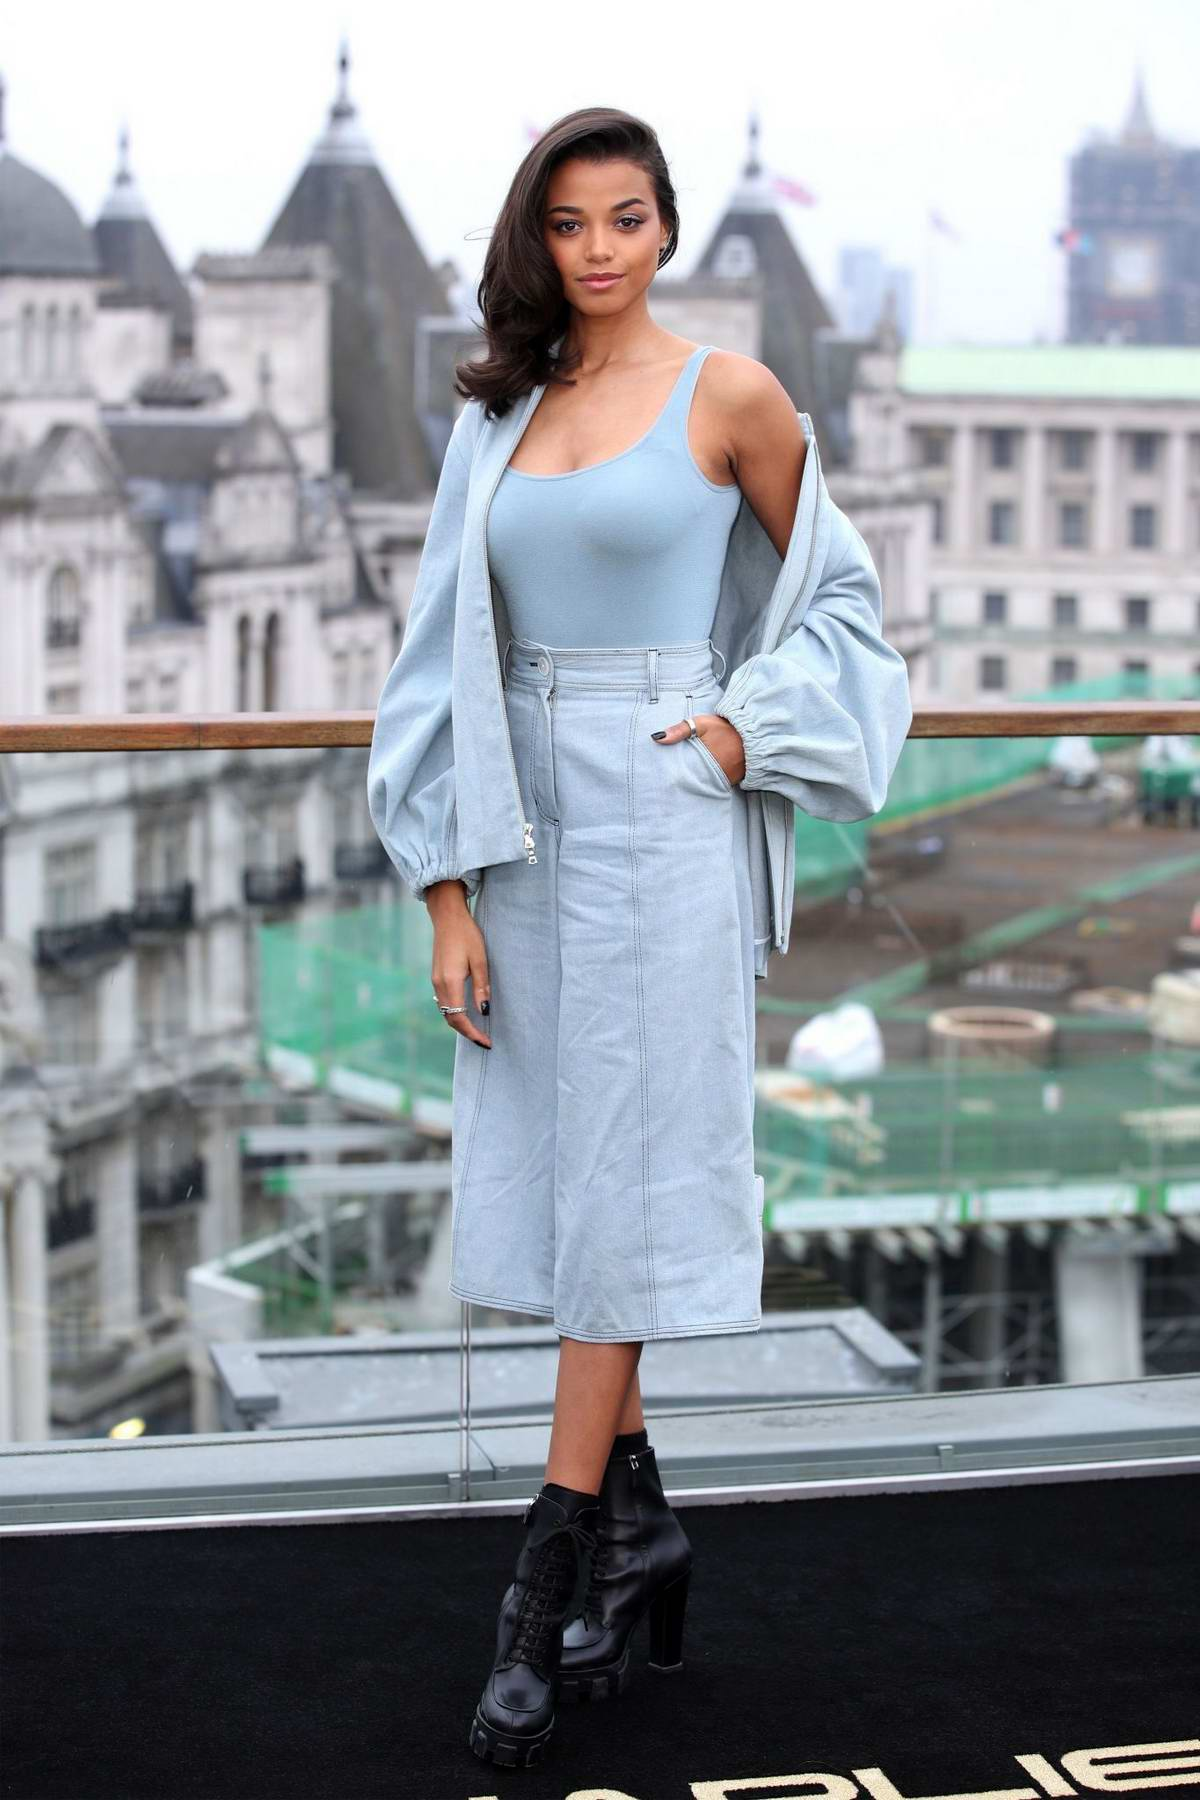 Ella Balinska attends a photocall for Charlie's Angels at The Corinthia Hotel London in London, UK